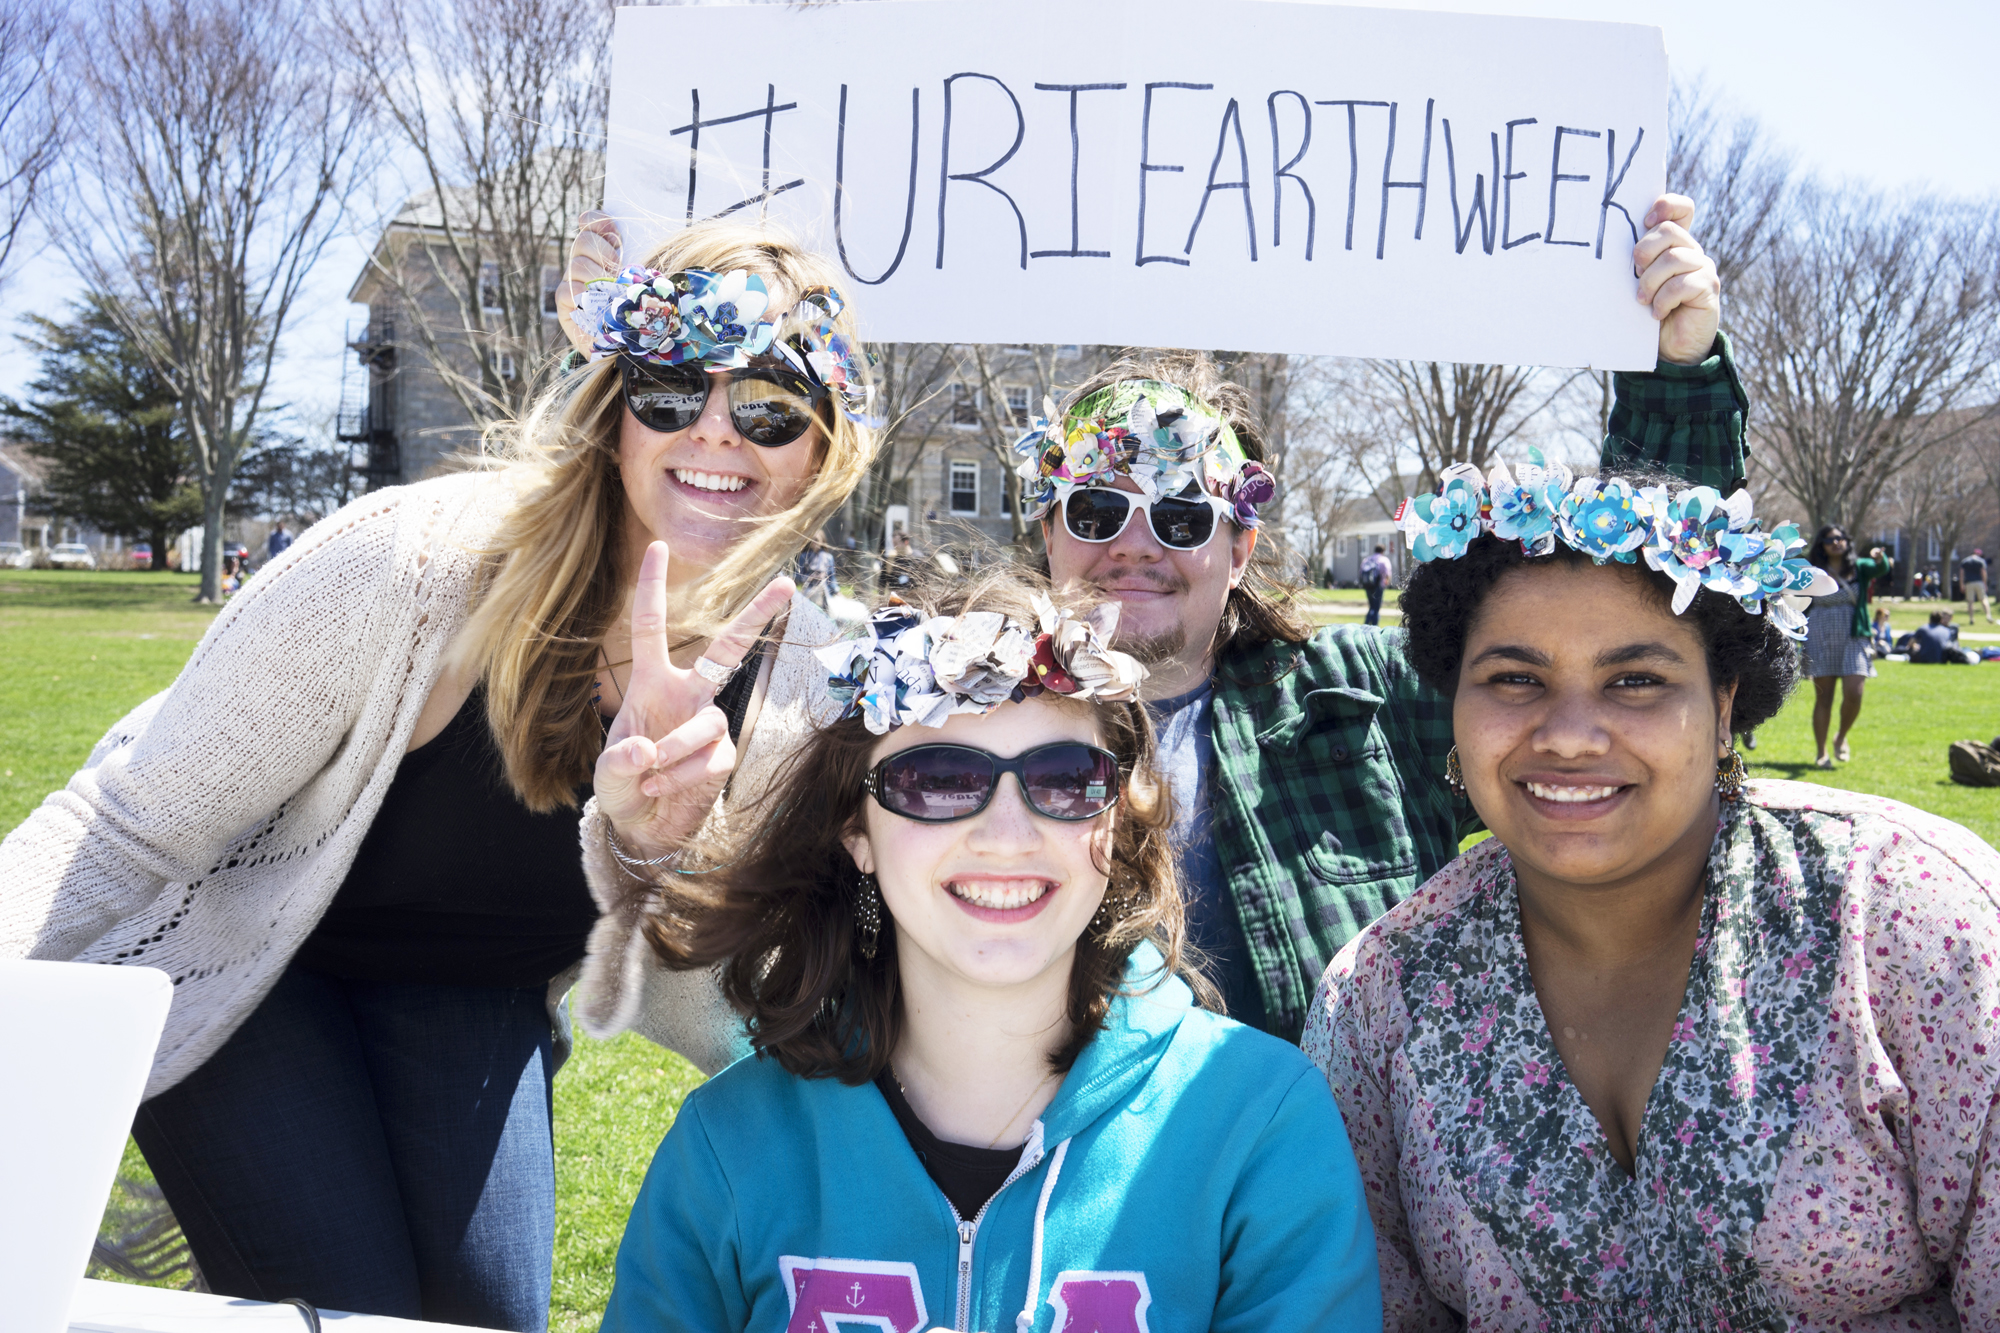 students on the quad holding #URIEarthWeek sign